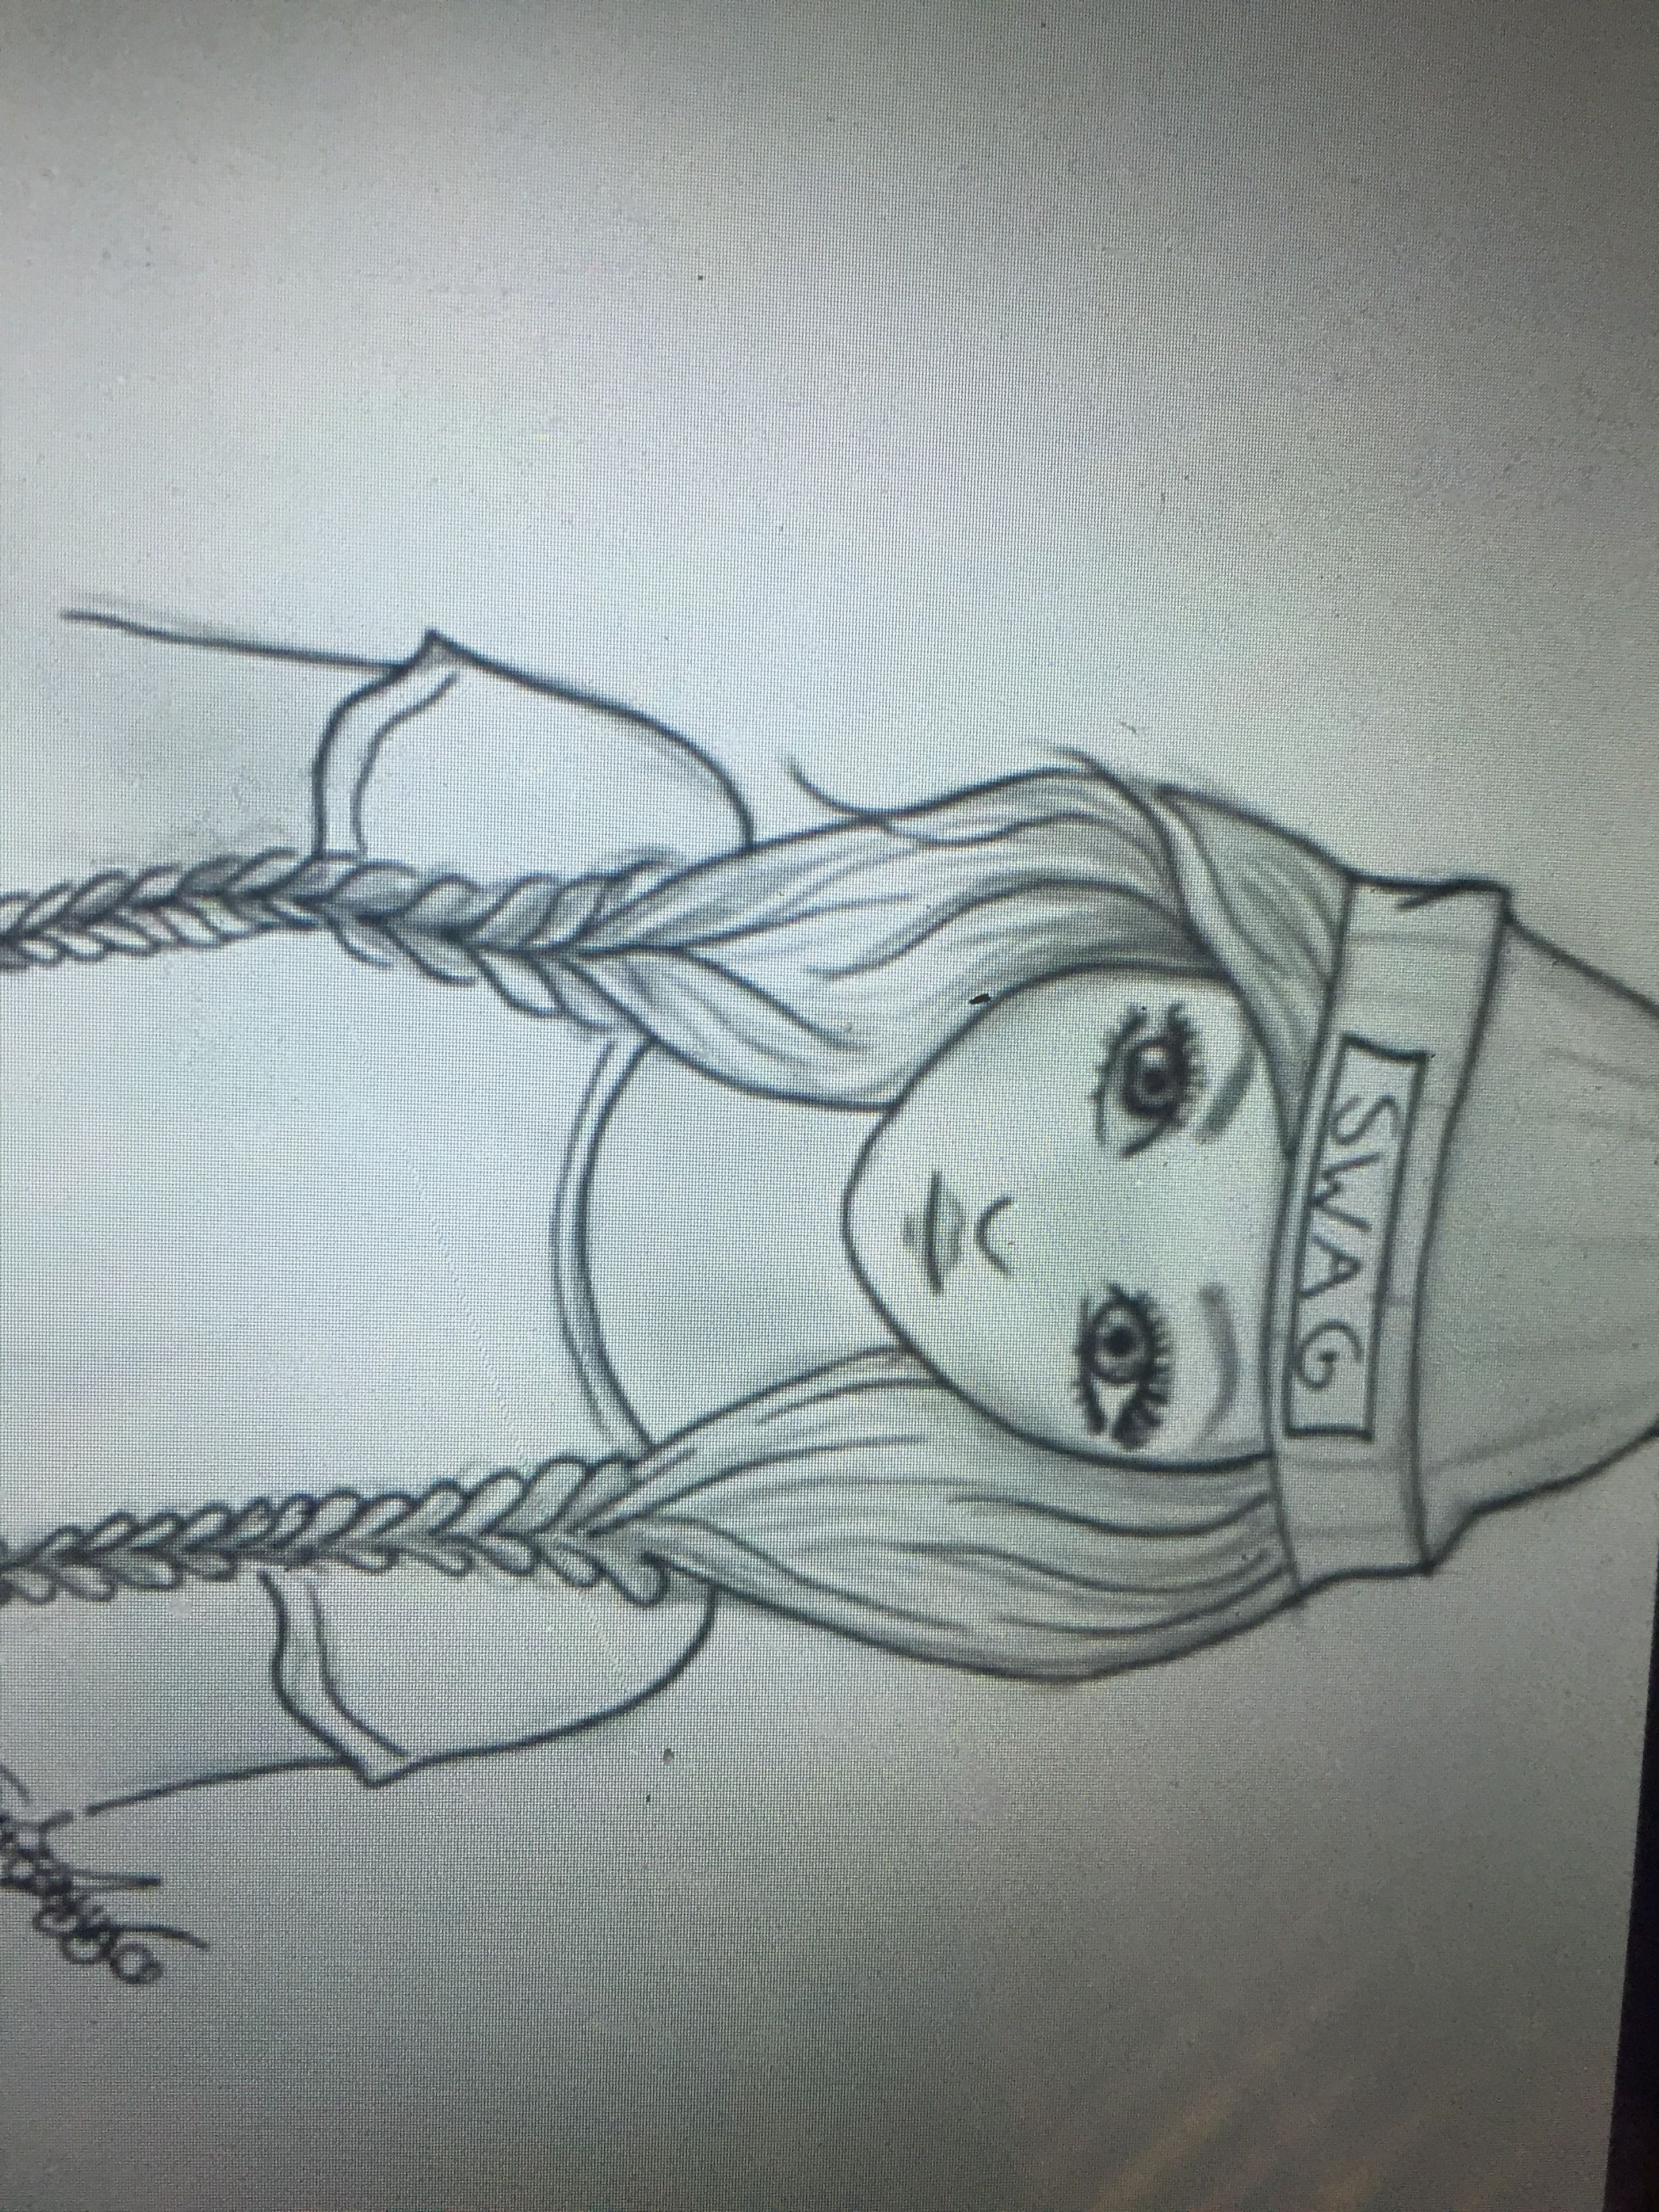 Tumbler swag girl drawing / easy/ braids/ sketch/ hair. Want to know how to  make it step by step , follow me and see